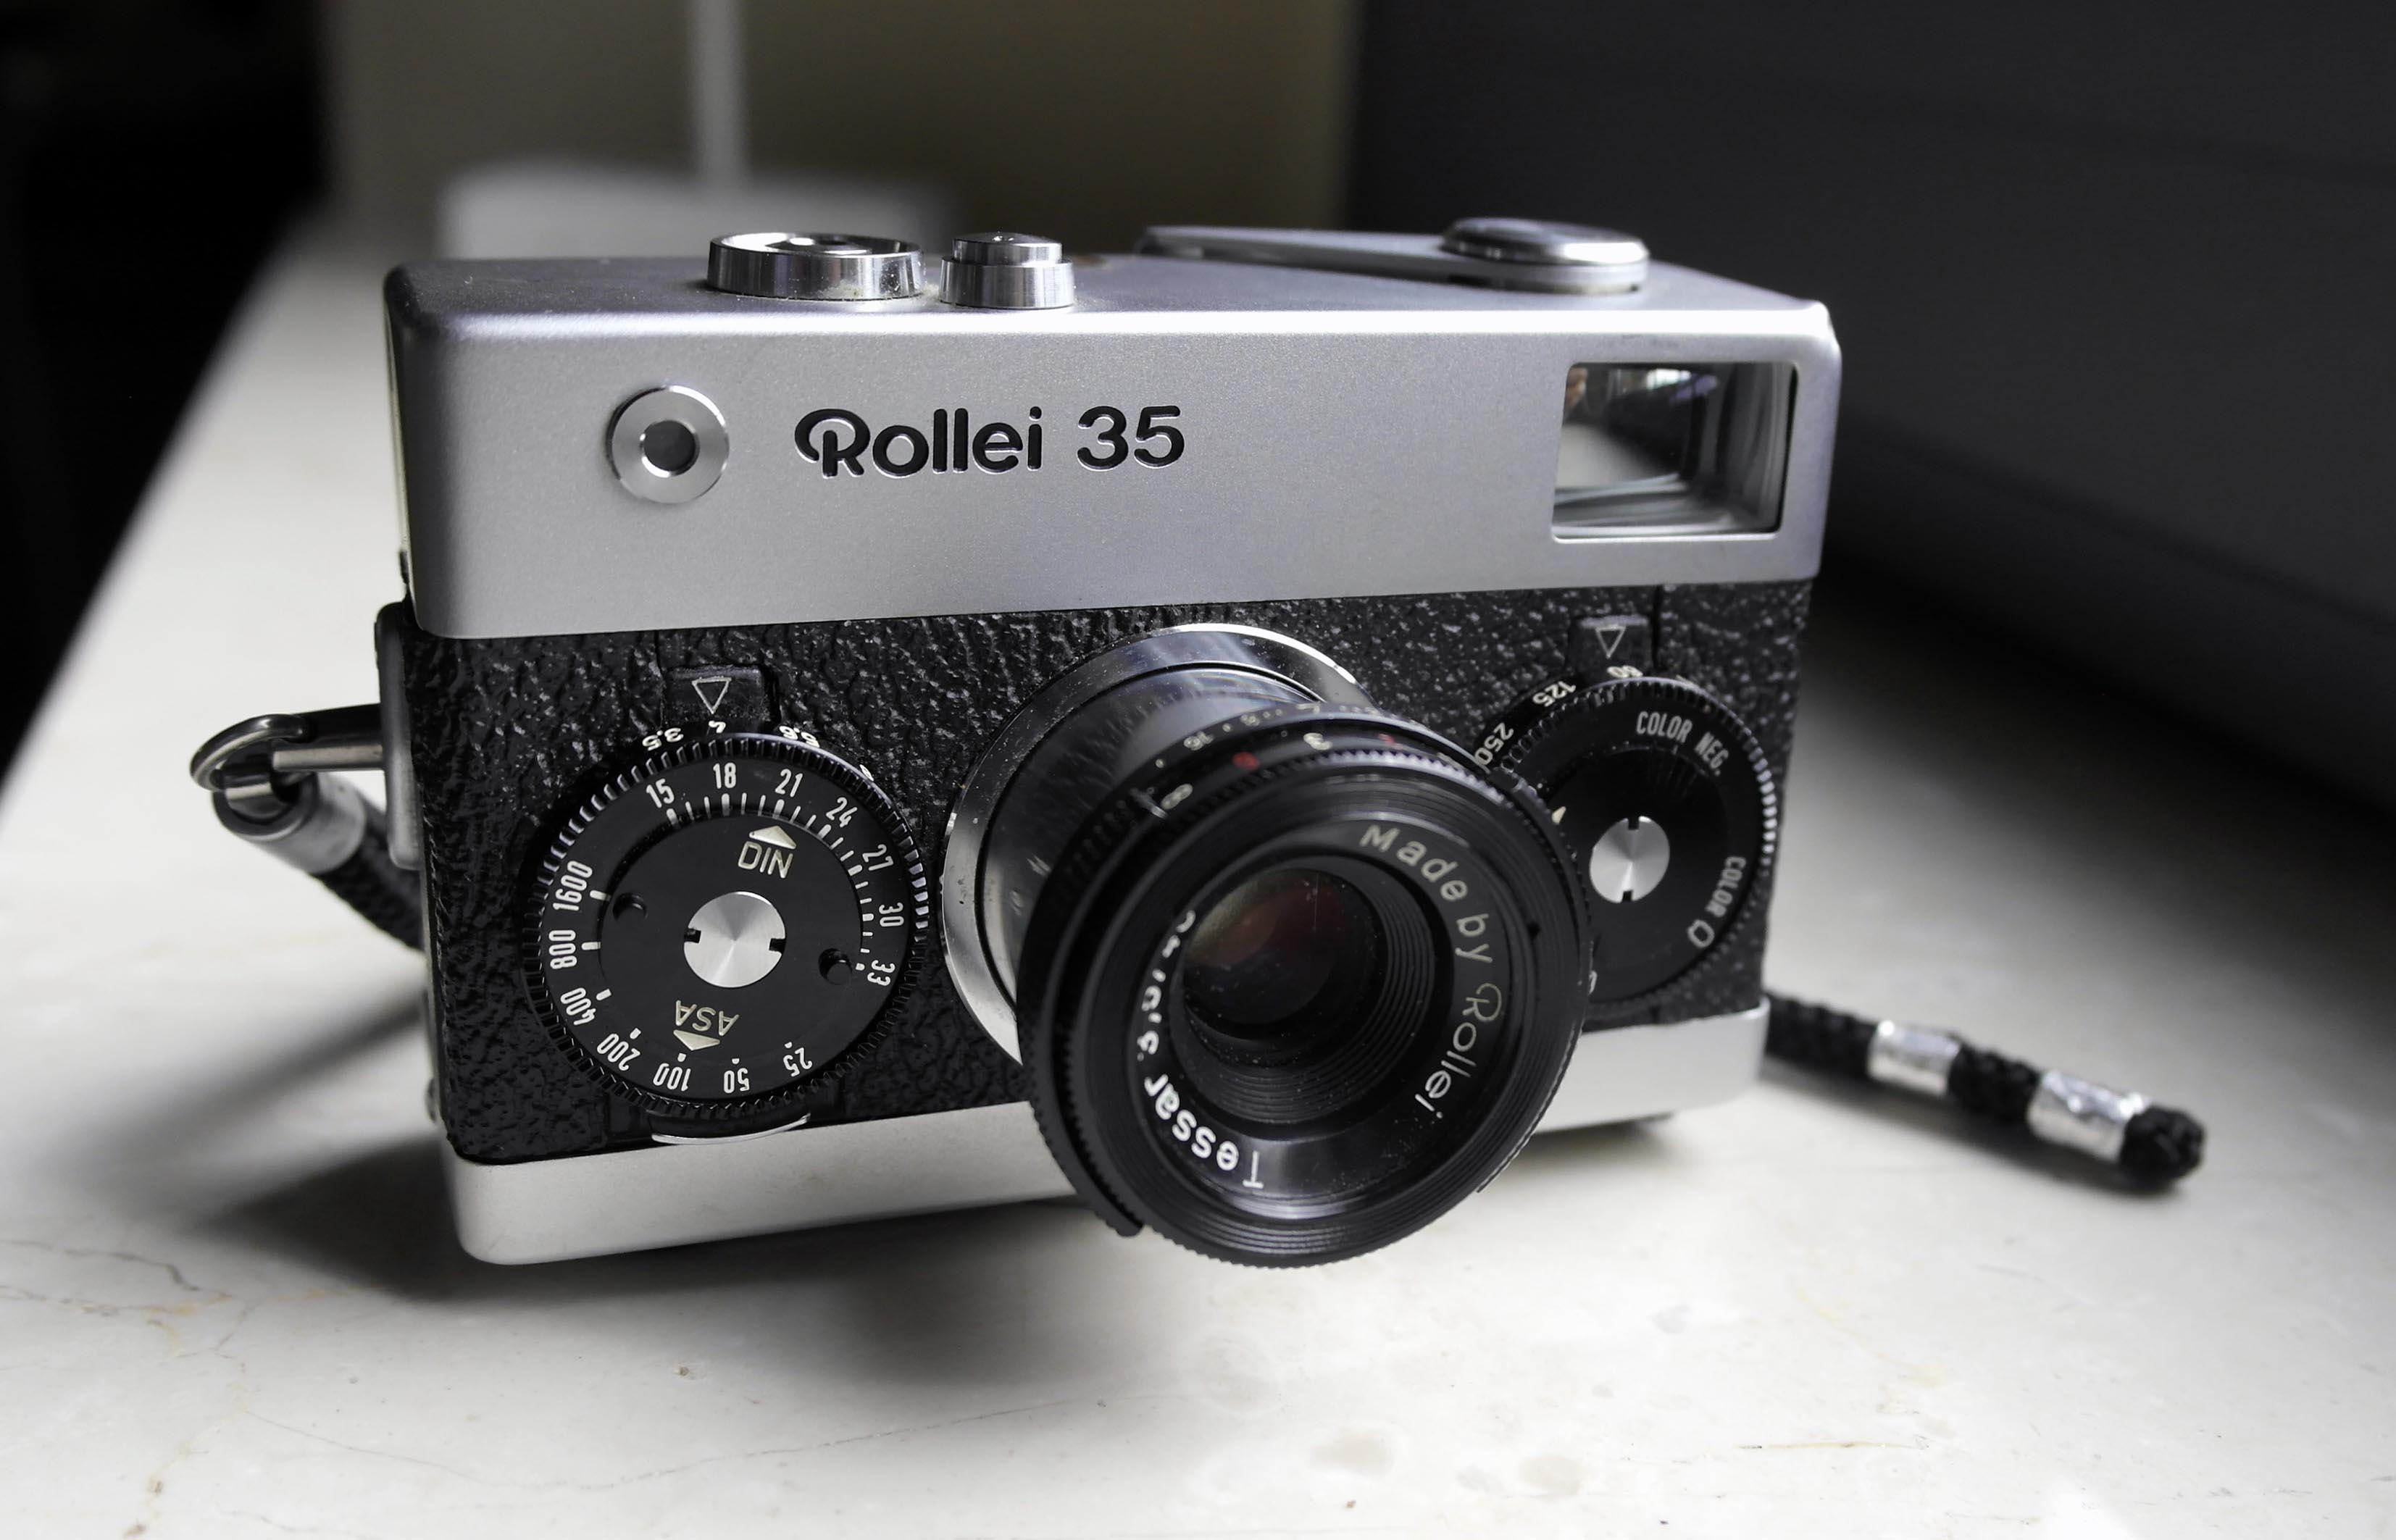 Rollei 35, a review: www.italianfilmphotography.it/en/rollei-35-2